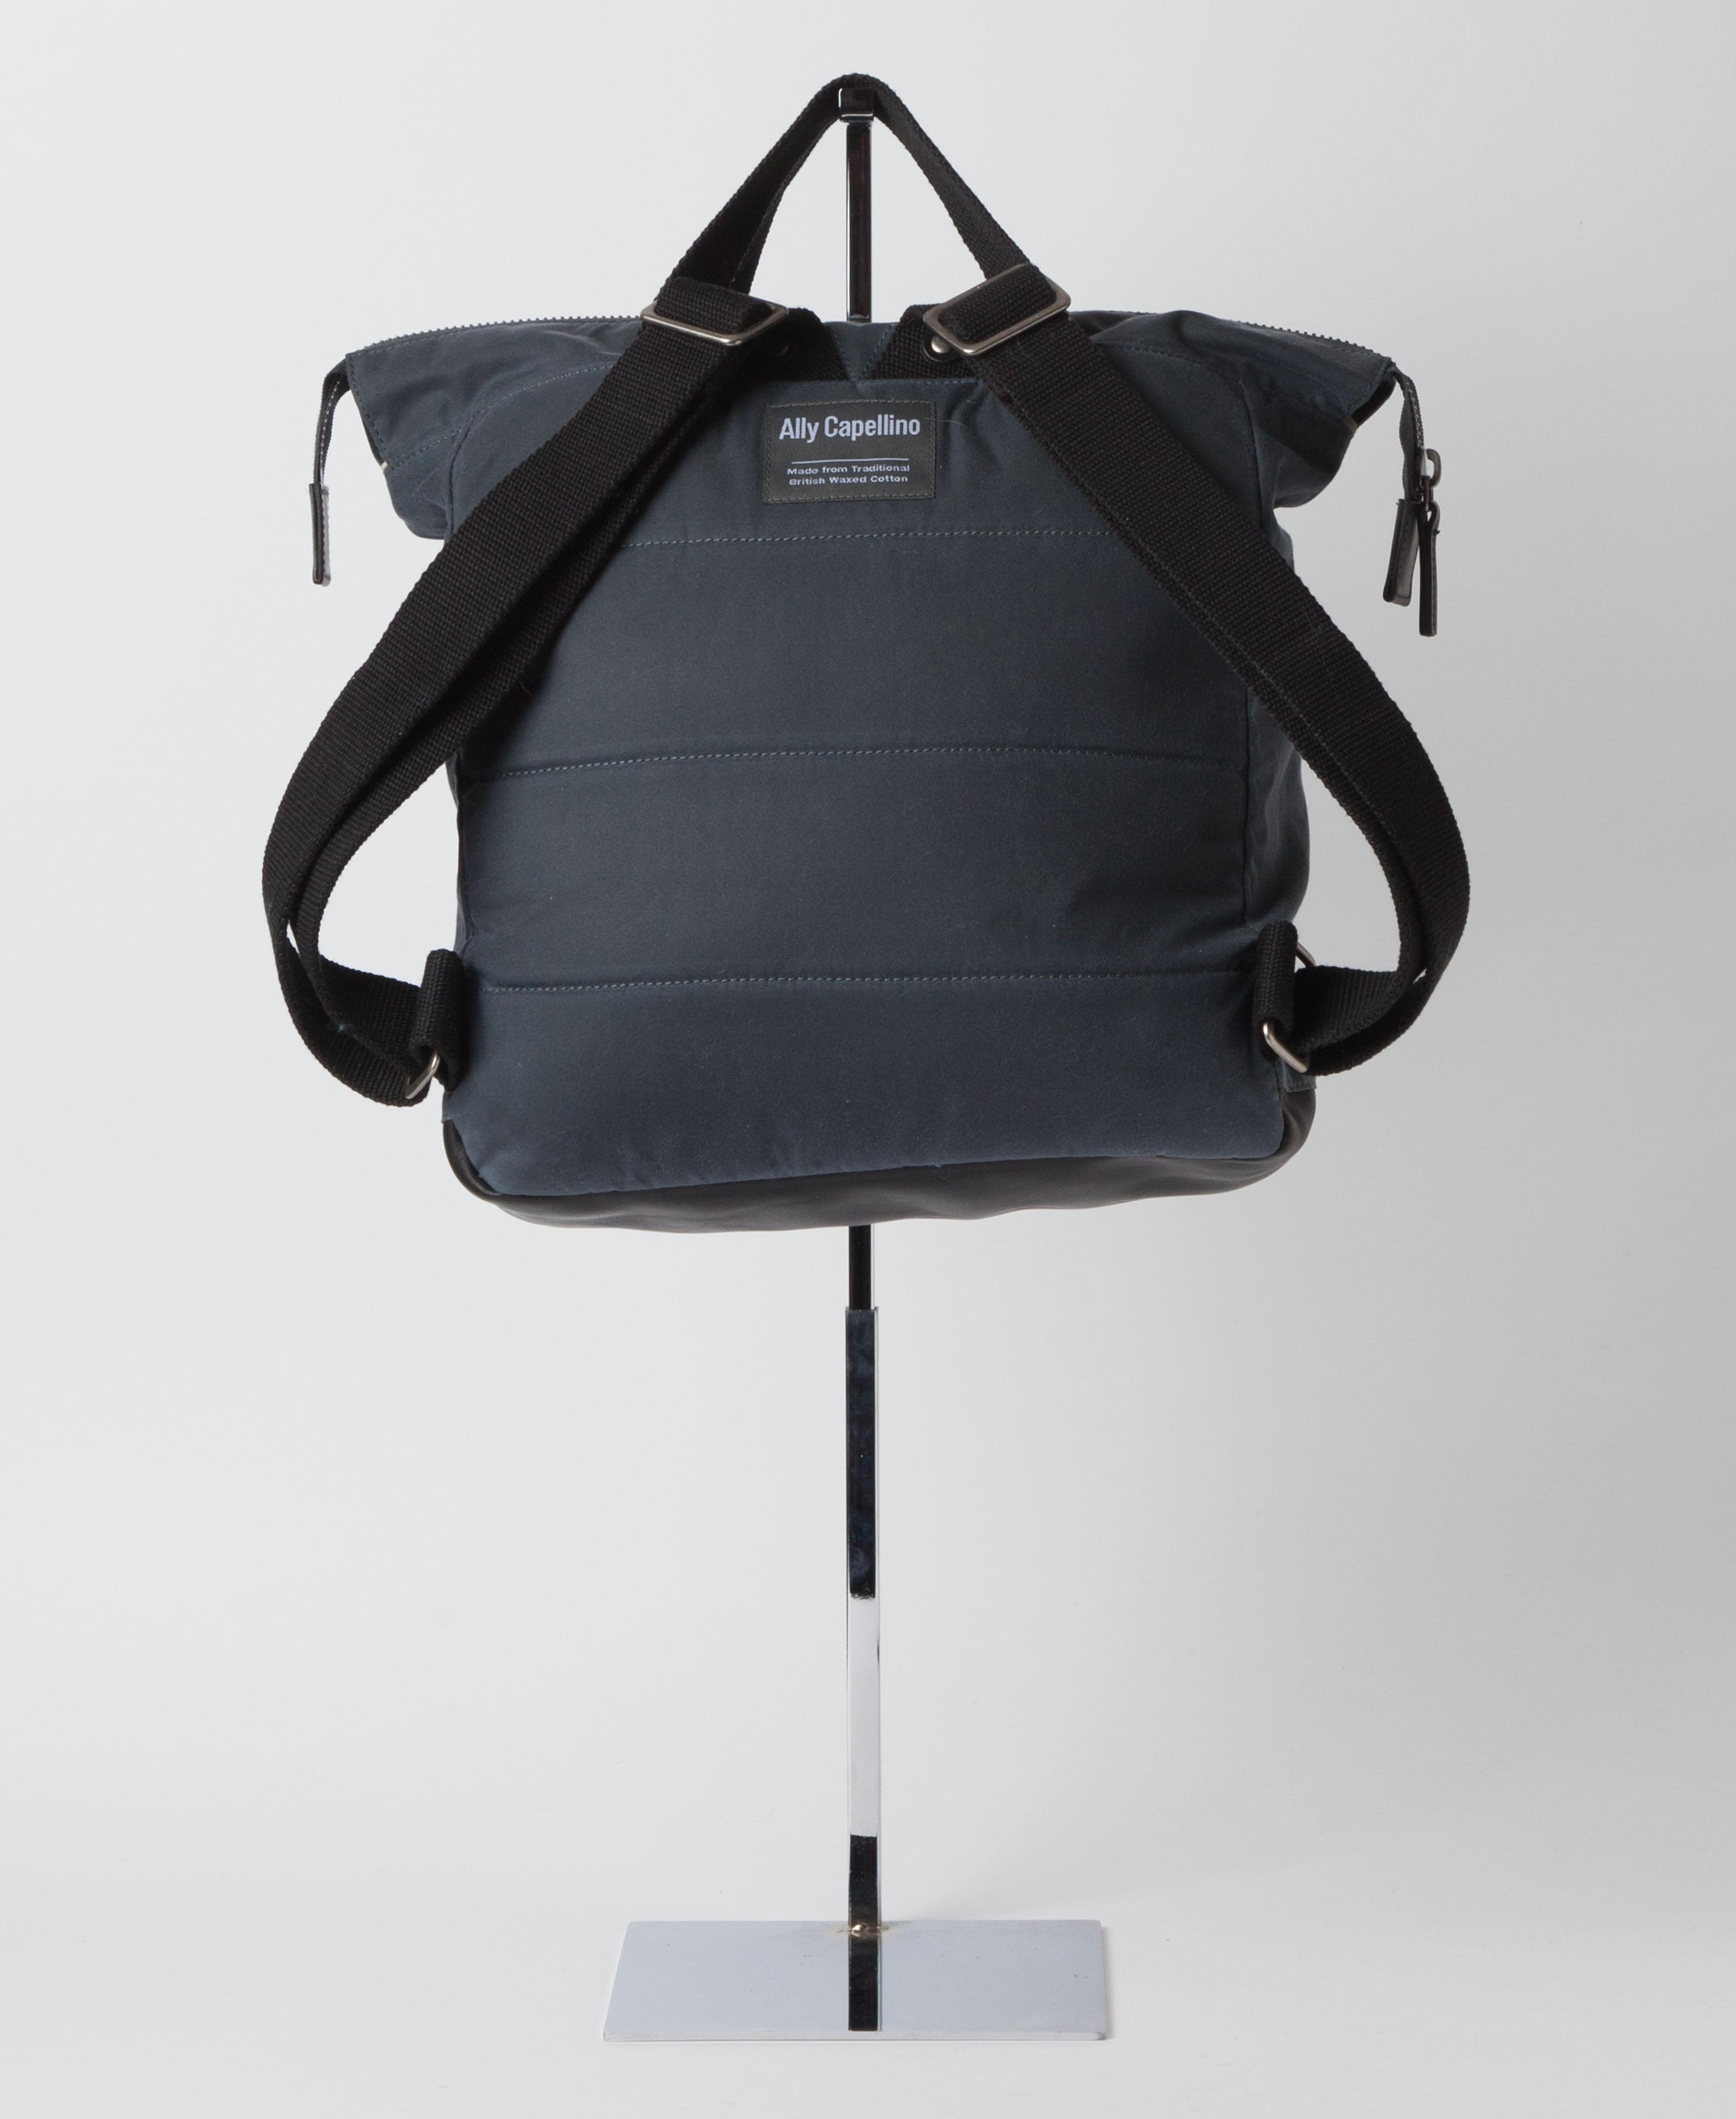 e00bcf880cab Ally Capellino Frances Waxed Cotton Rucksack in Gray for Men - Lyst